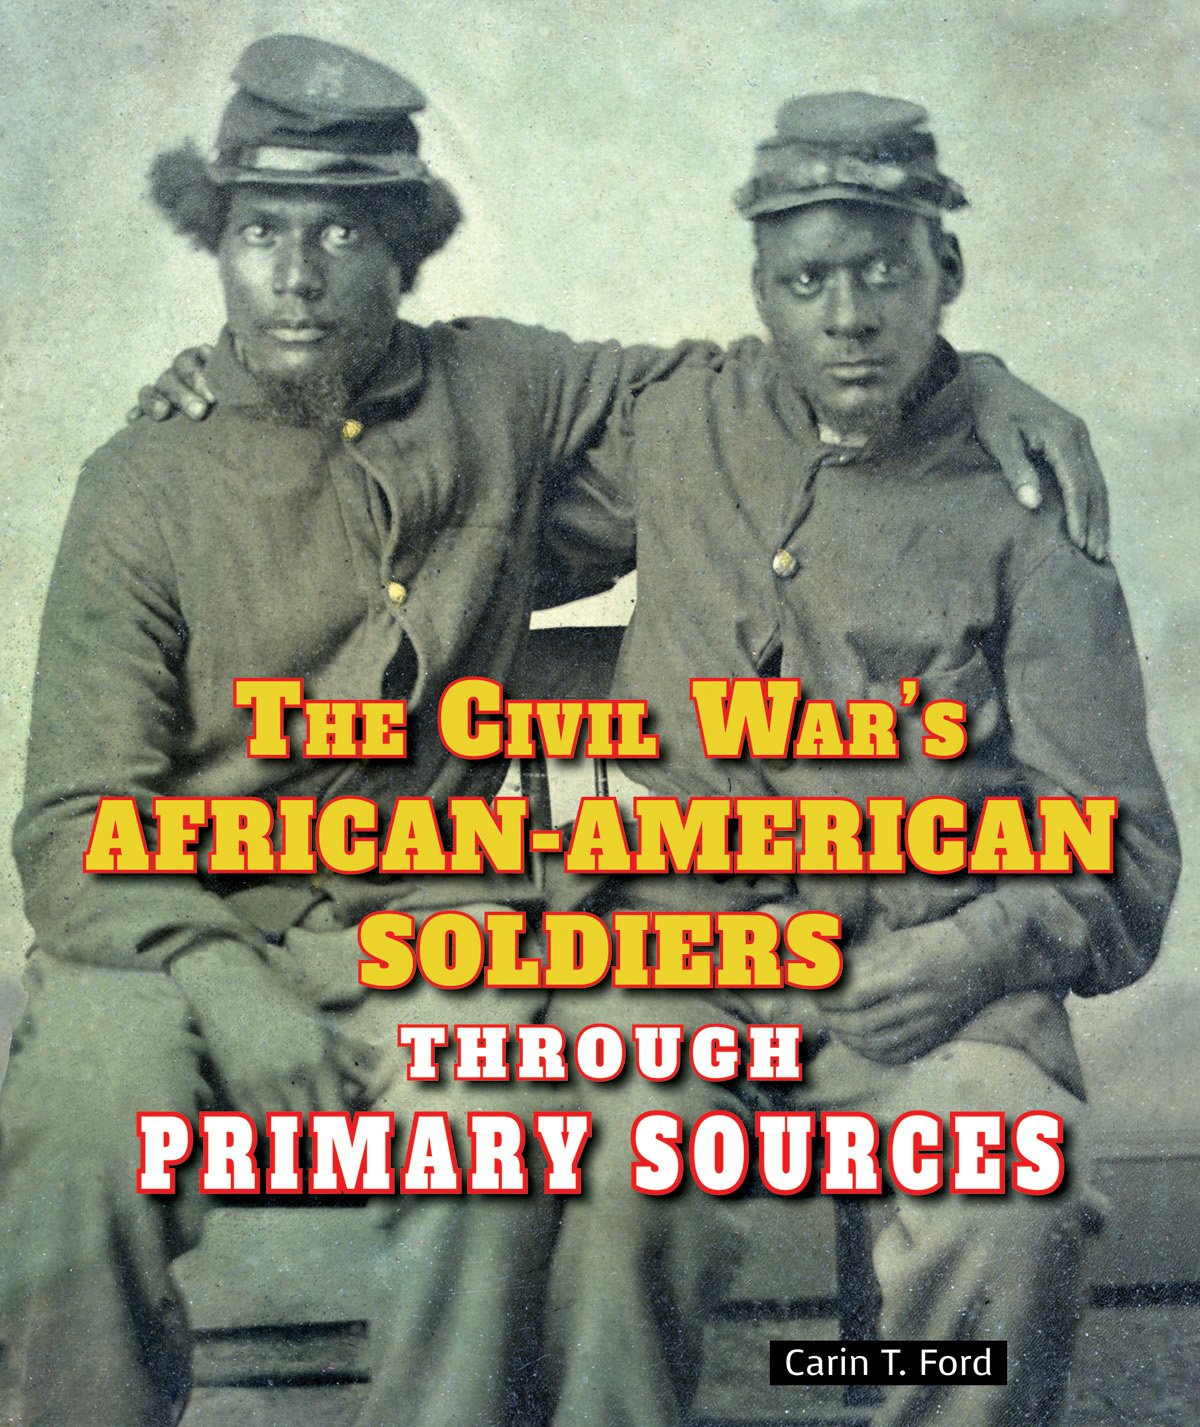 The Civil War's African-American Soldiers Through Primary Sources (The Civil War Through Primary Sources) ebook